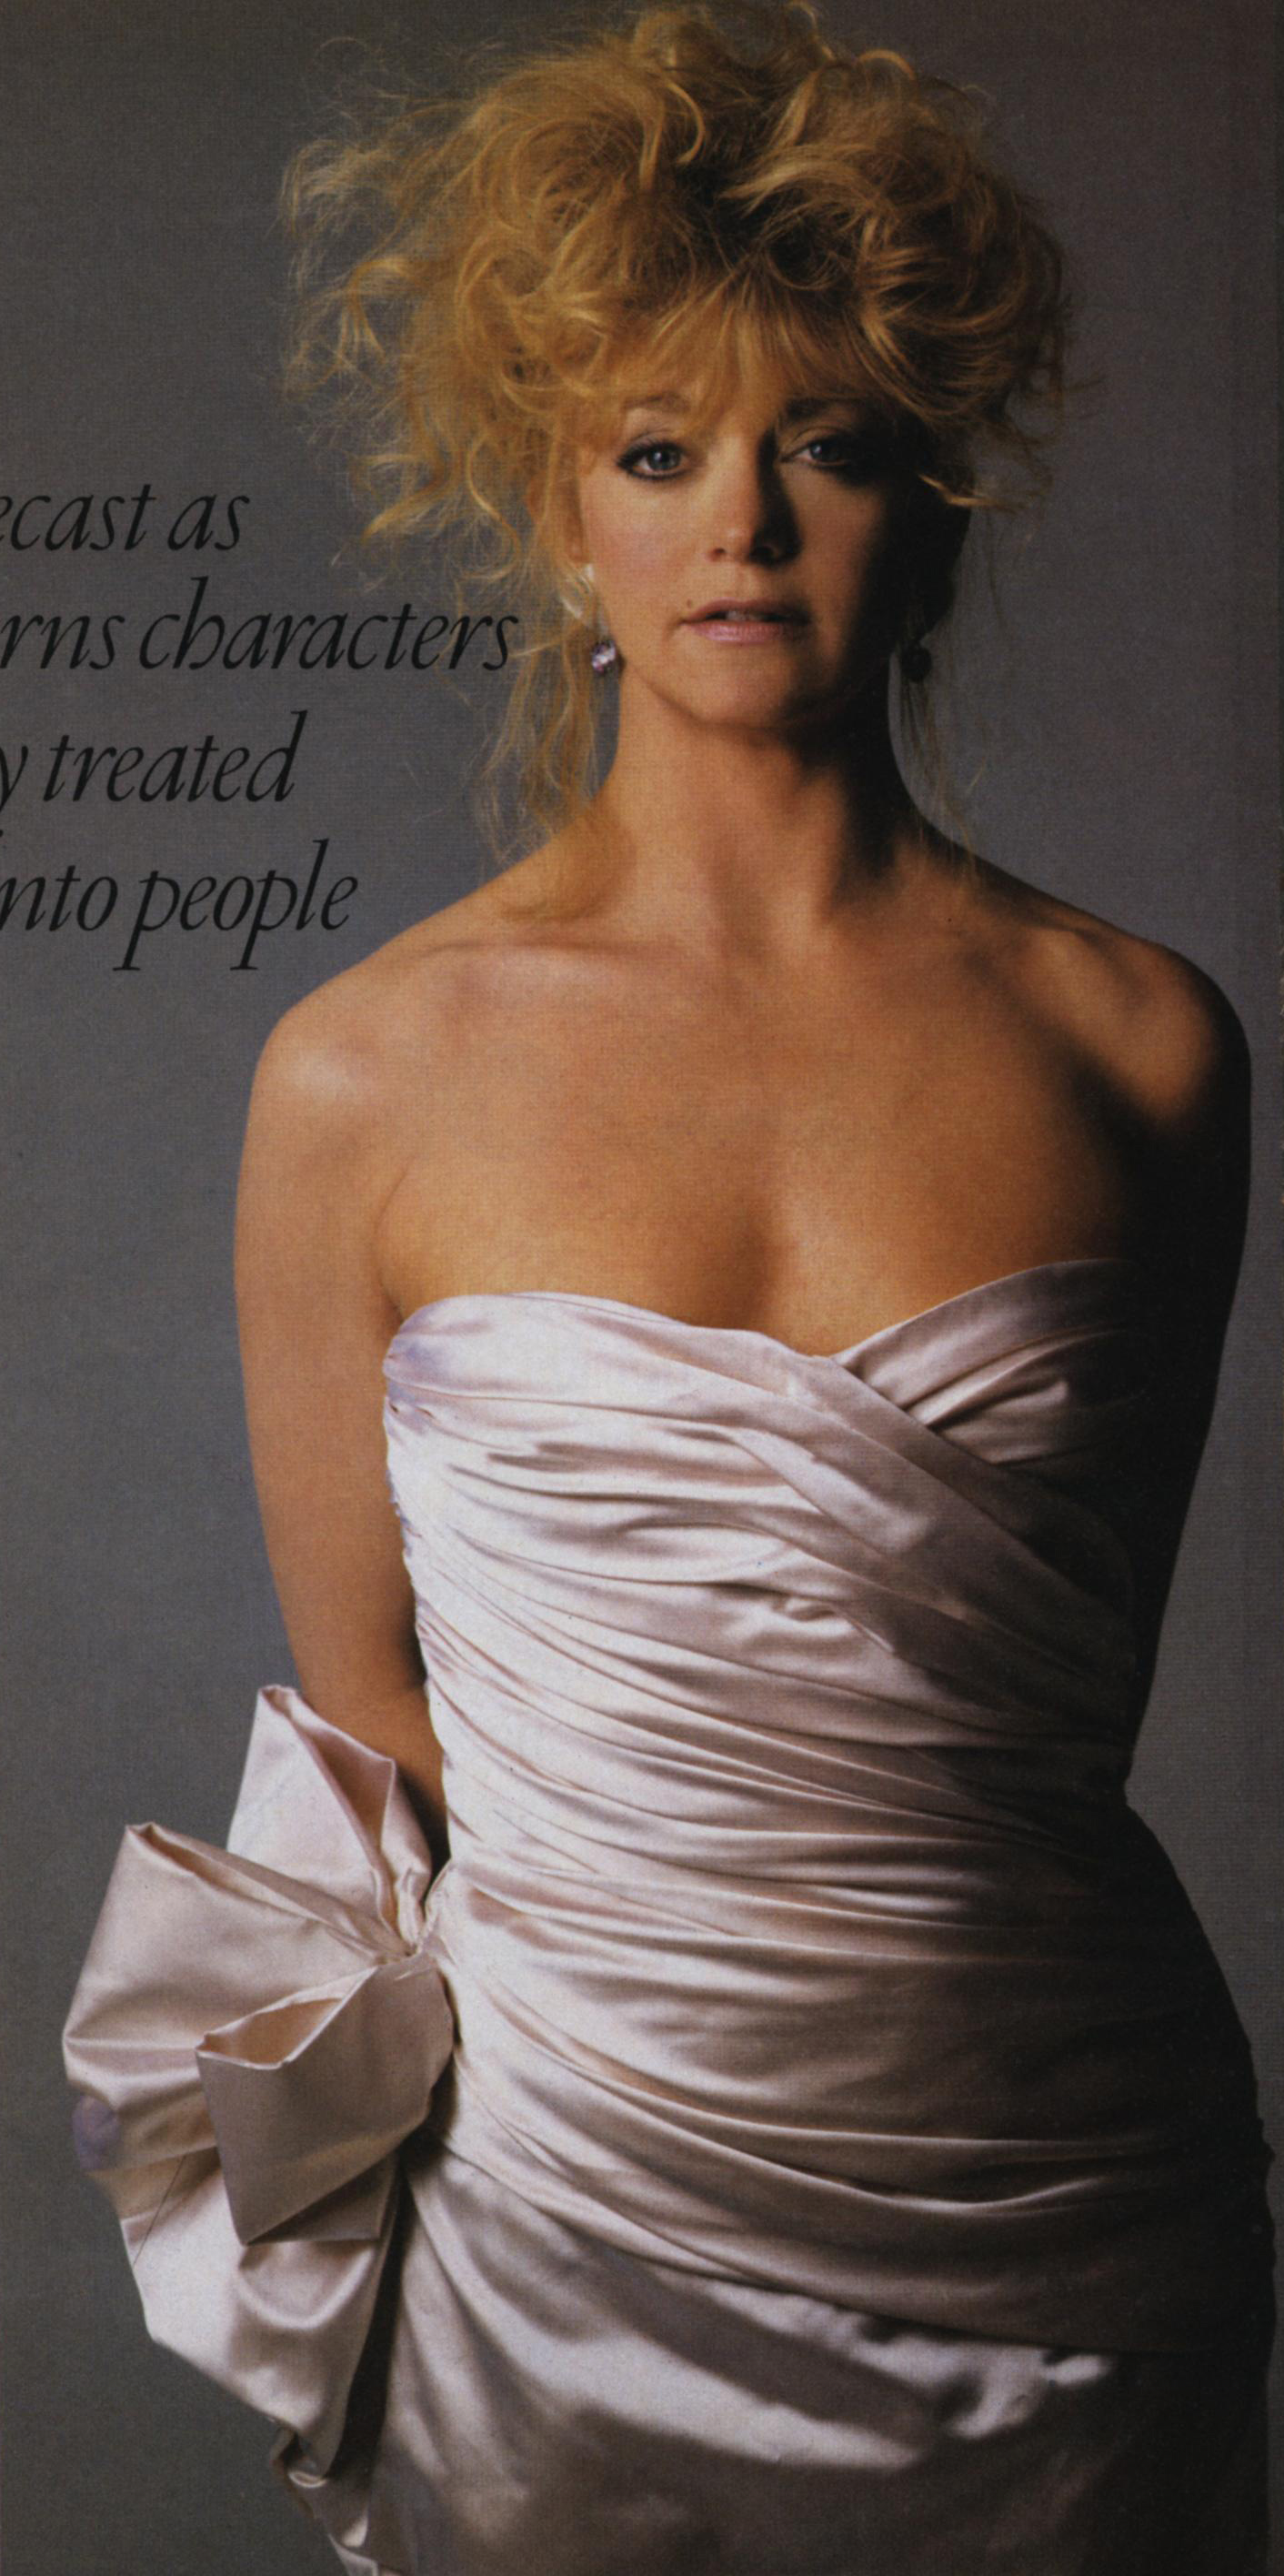 The sculpting effect of Tiel's dresses was beloved by celebrities, including Goldie Hawn who often wore them for events. Photo by Denis Piel for Vogue, May 1984.